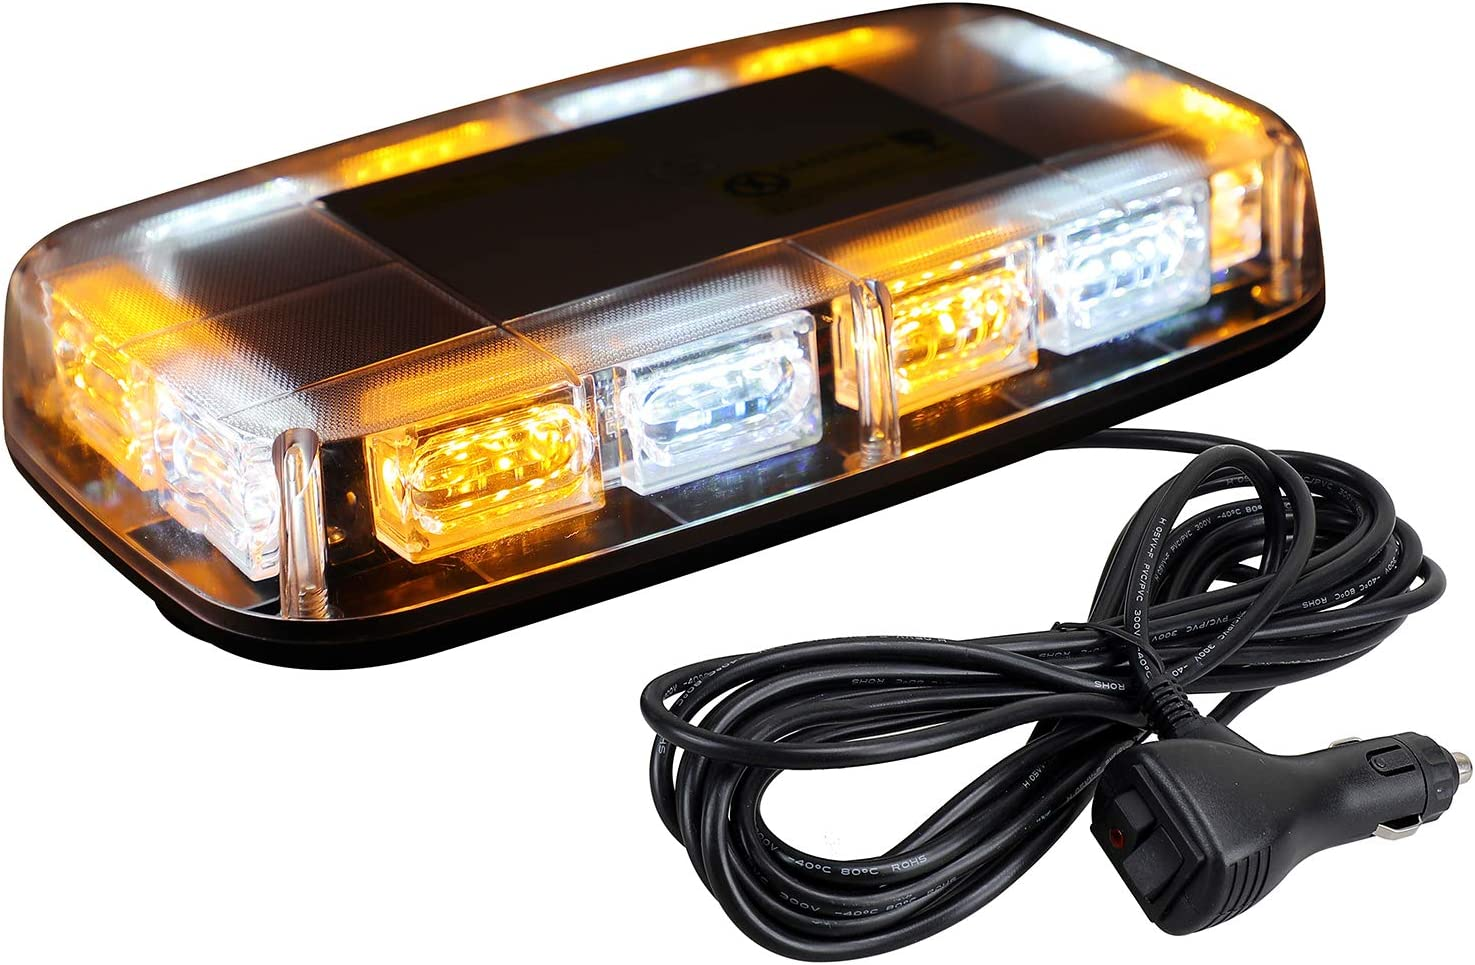 [Upgraded 5] ASPL 48LED Roof Top Strobe Lights, High Visibility Emergency Safety Warning LED Mini Strobe Light bar with Magnetic Base for 12-24V Snow Plow, Trucks, Construction Vehicles (Amber/White)